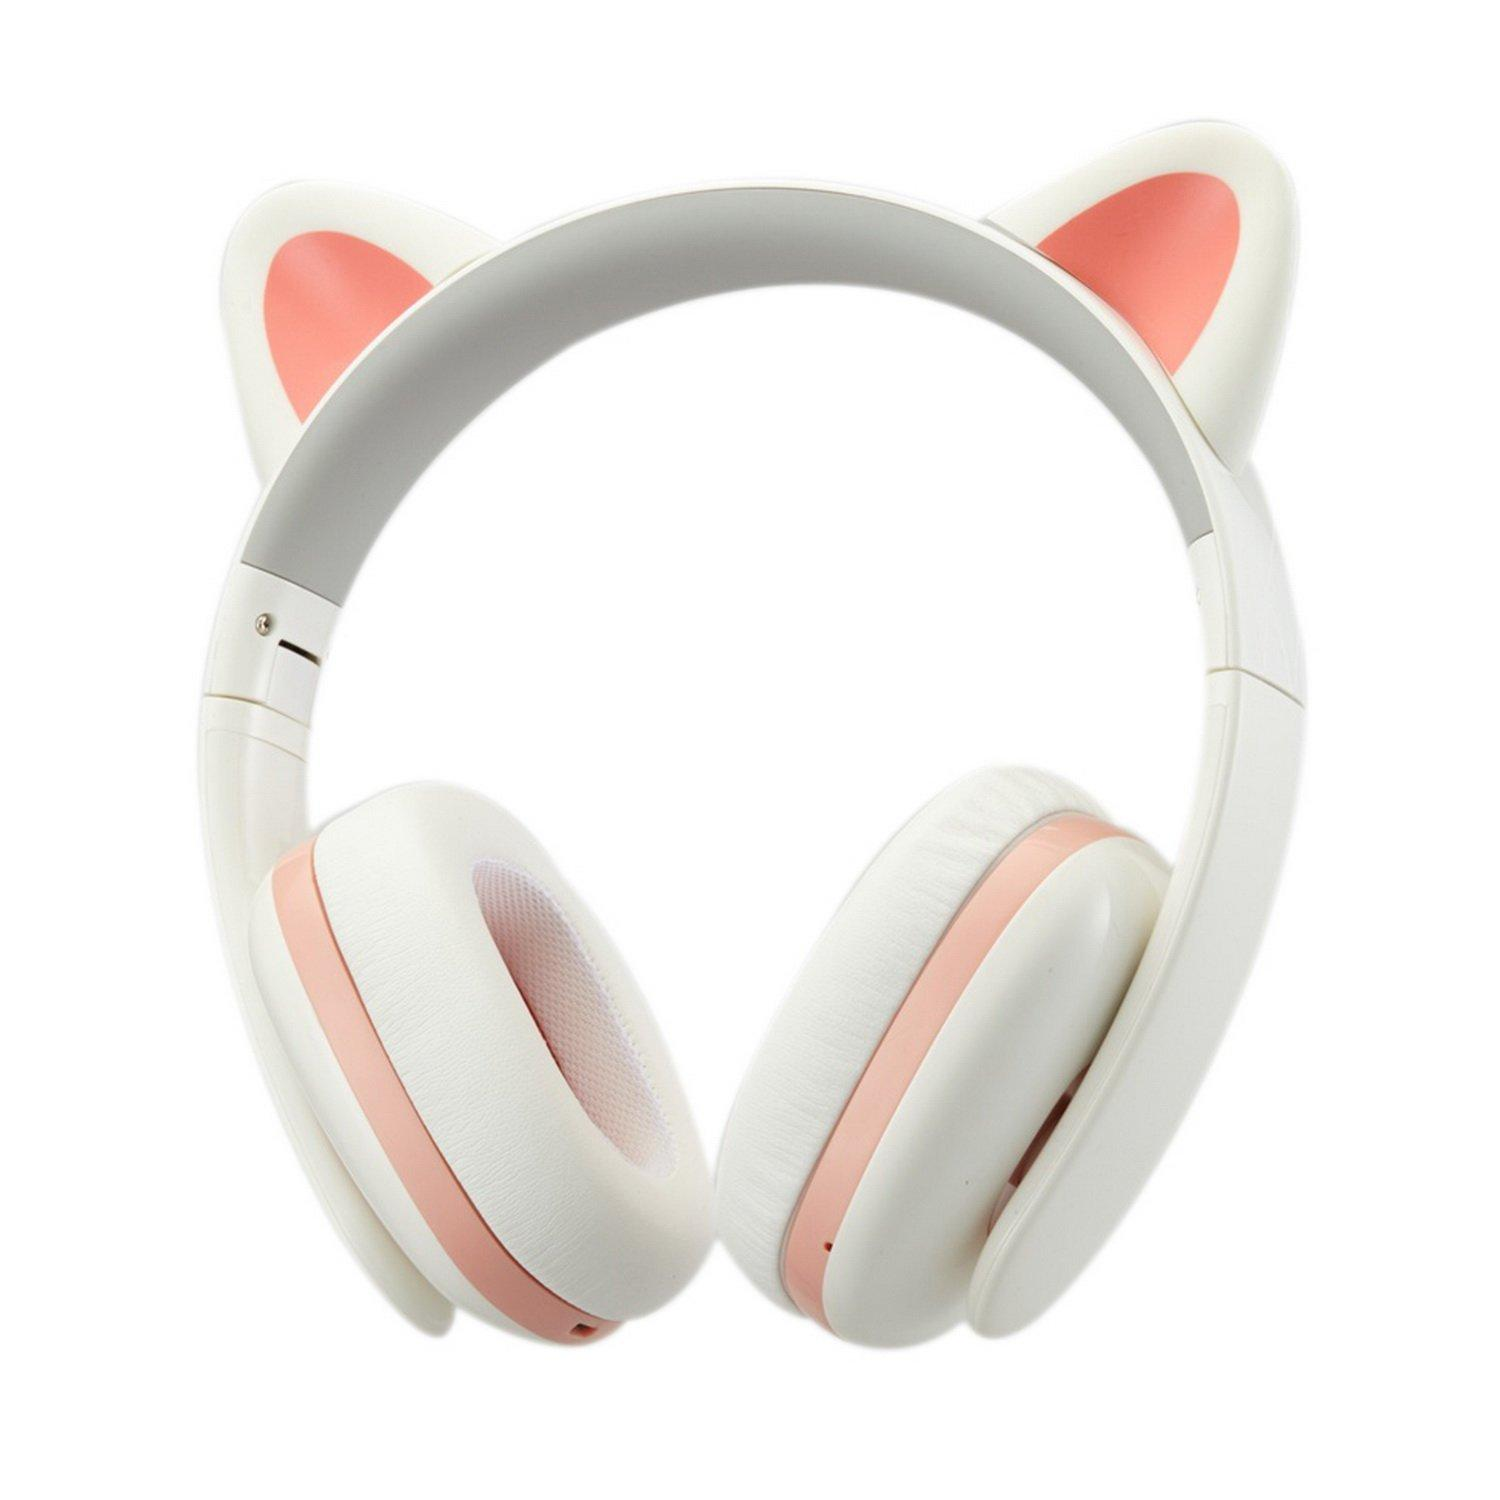 Censi Moecen Wireless Bluetooth Cat Ear Headphones with Detachable Cat Ears (White/Pink)